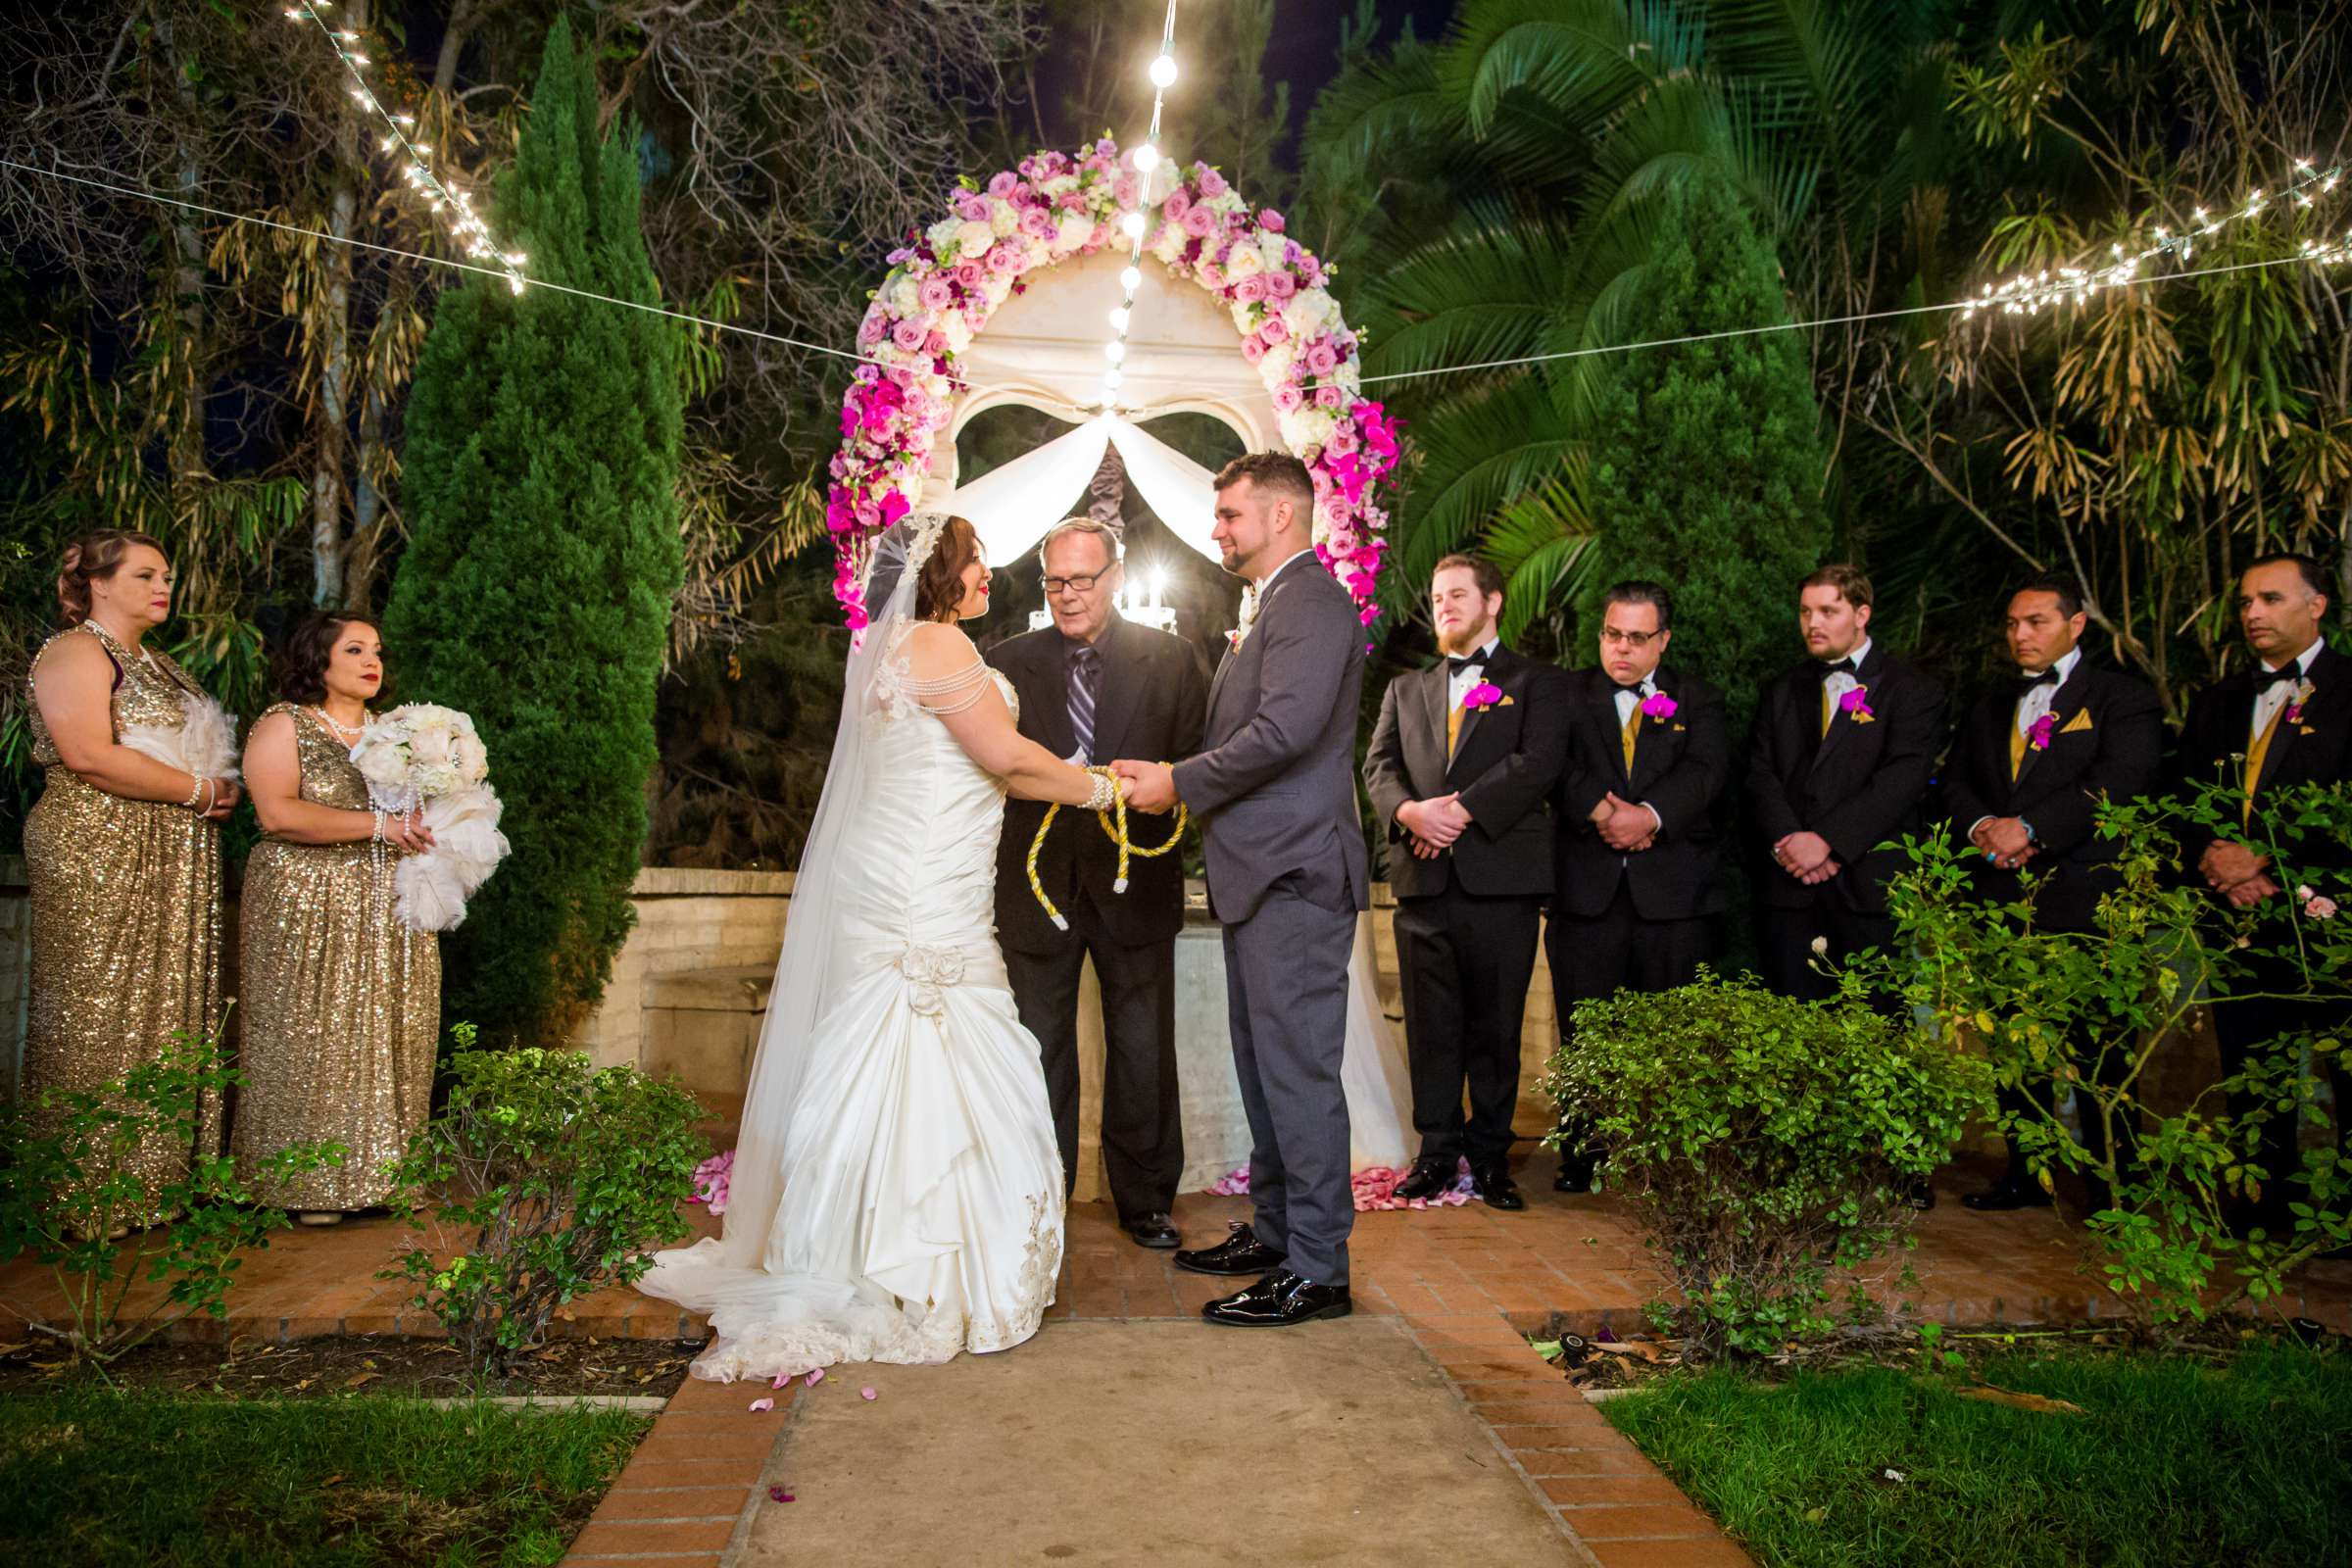 The Prado Wedding coordinated by Breezy Day Weddings, Aalis and Michael Wedding Photo #100 by True Photography